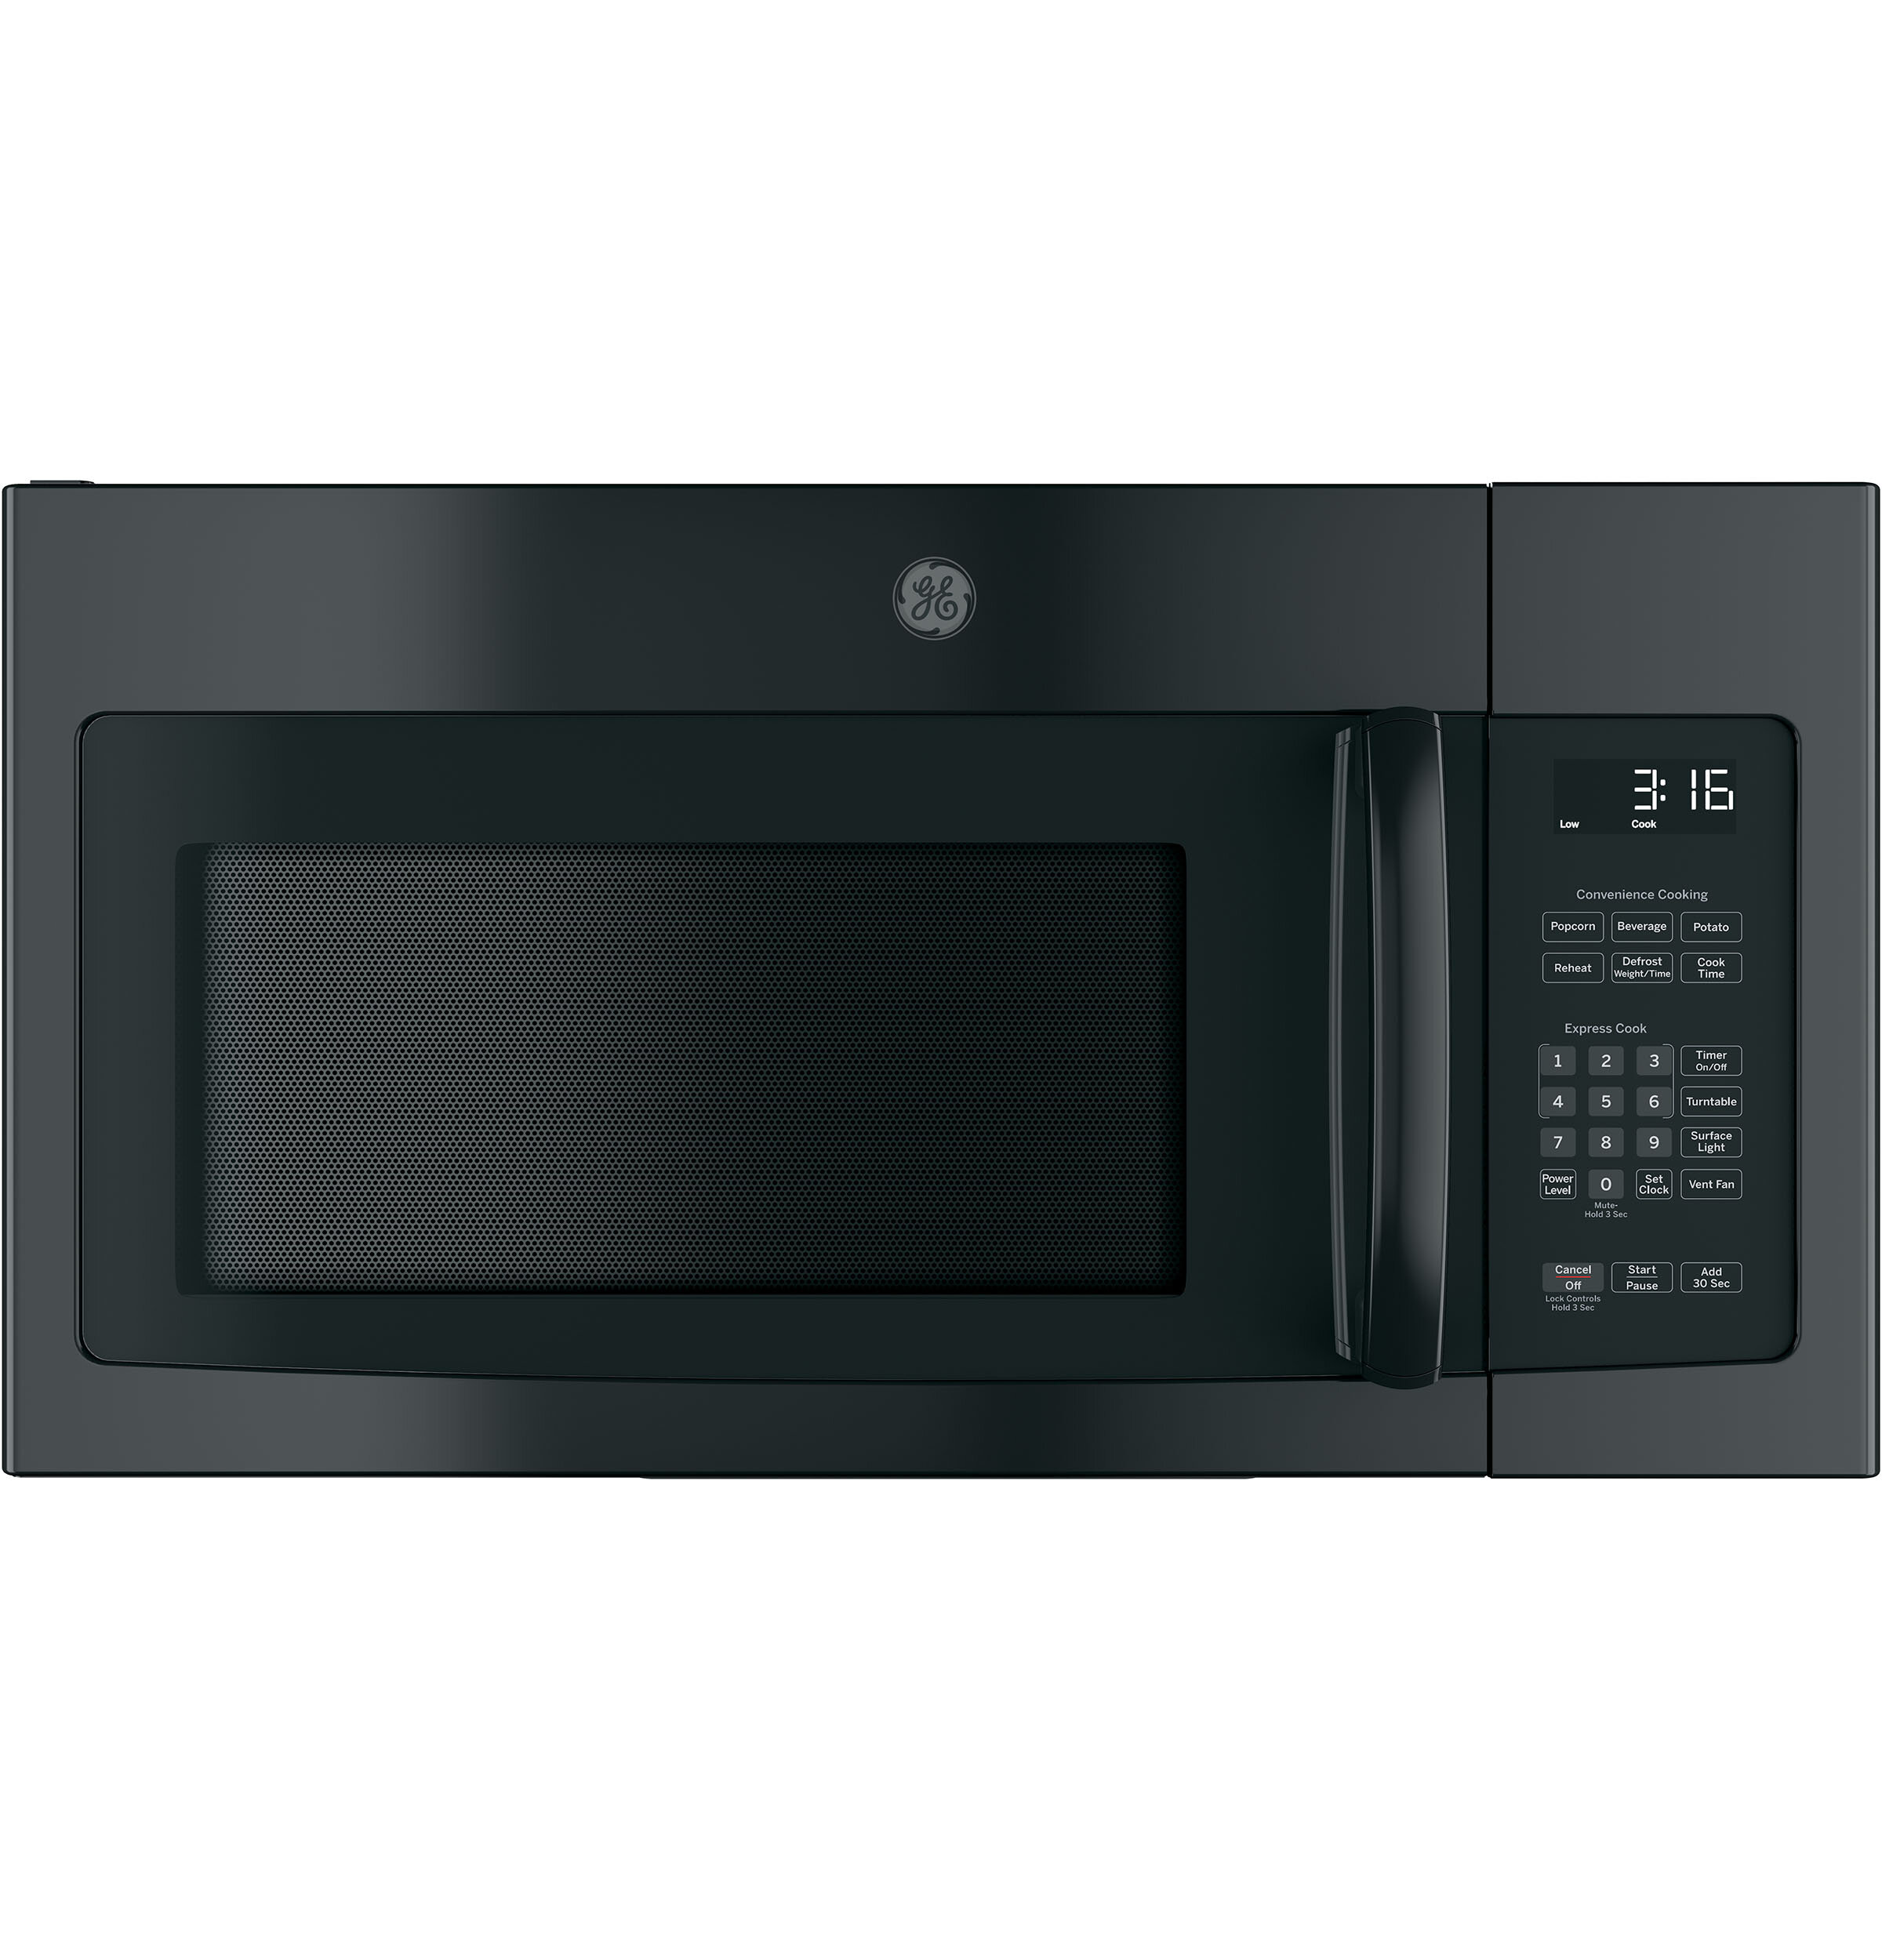 Ge Liances 30 1 6 Cu Ft Over The